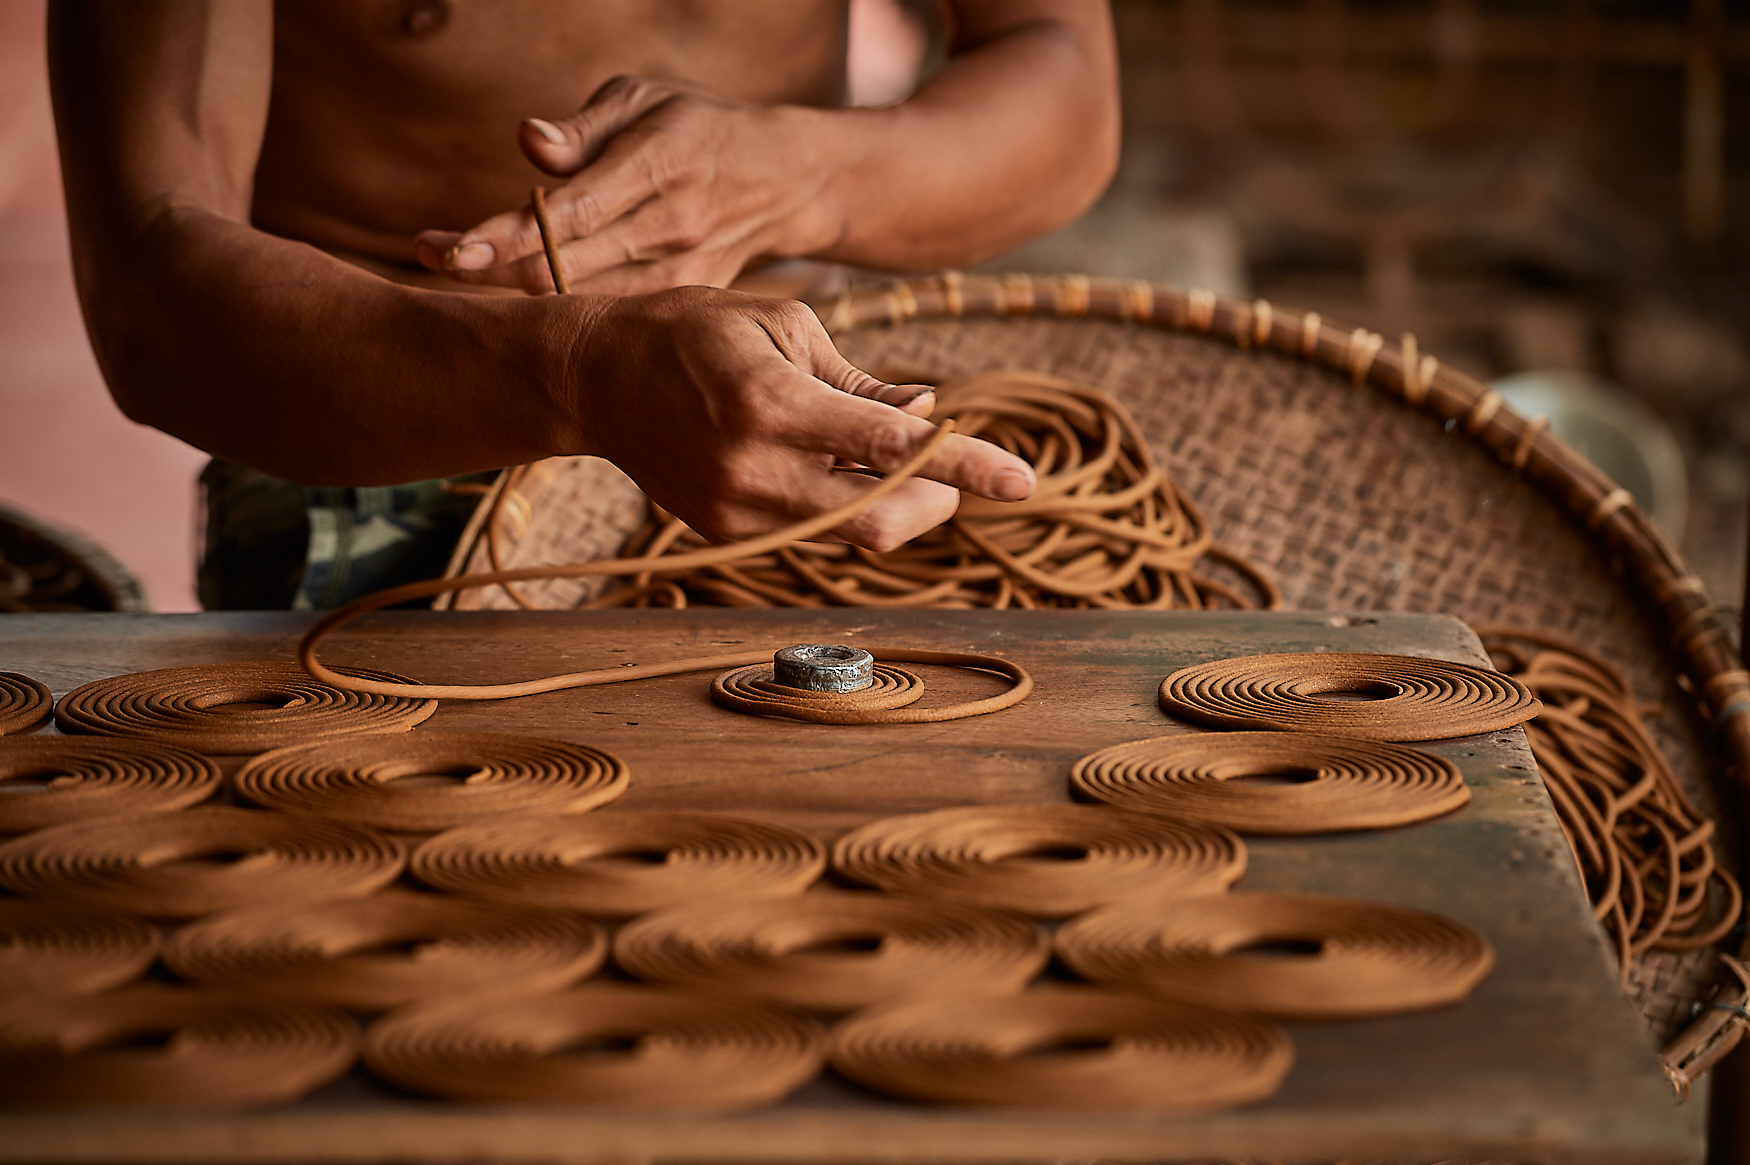 Circular incense pyramids are rolled by hand